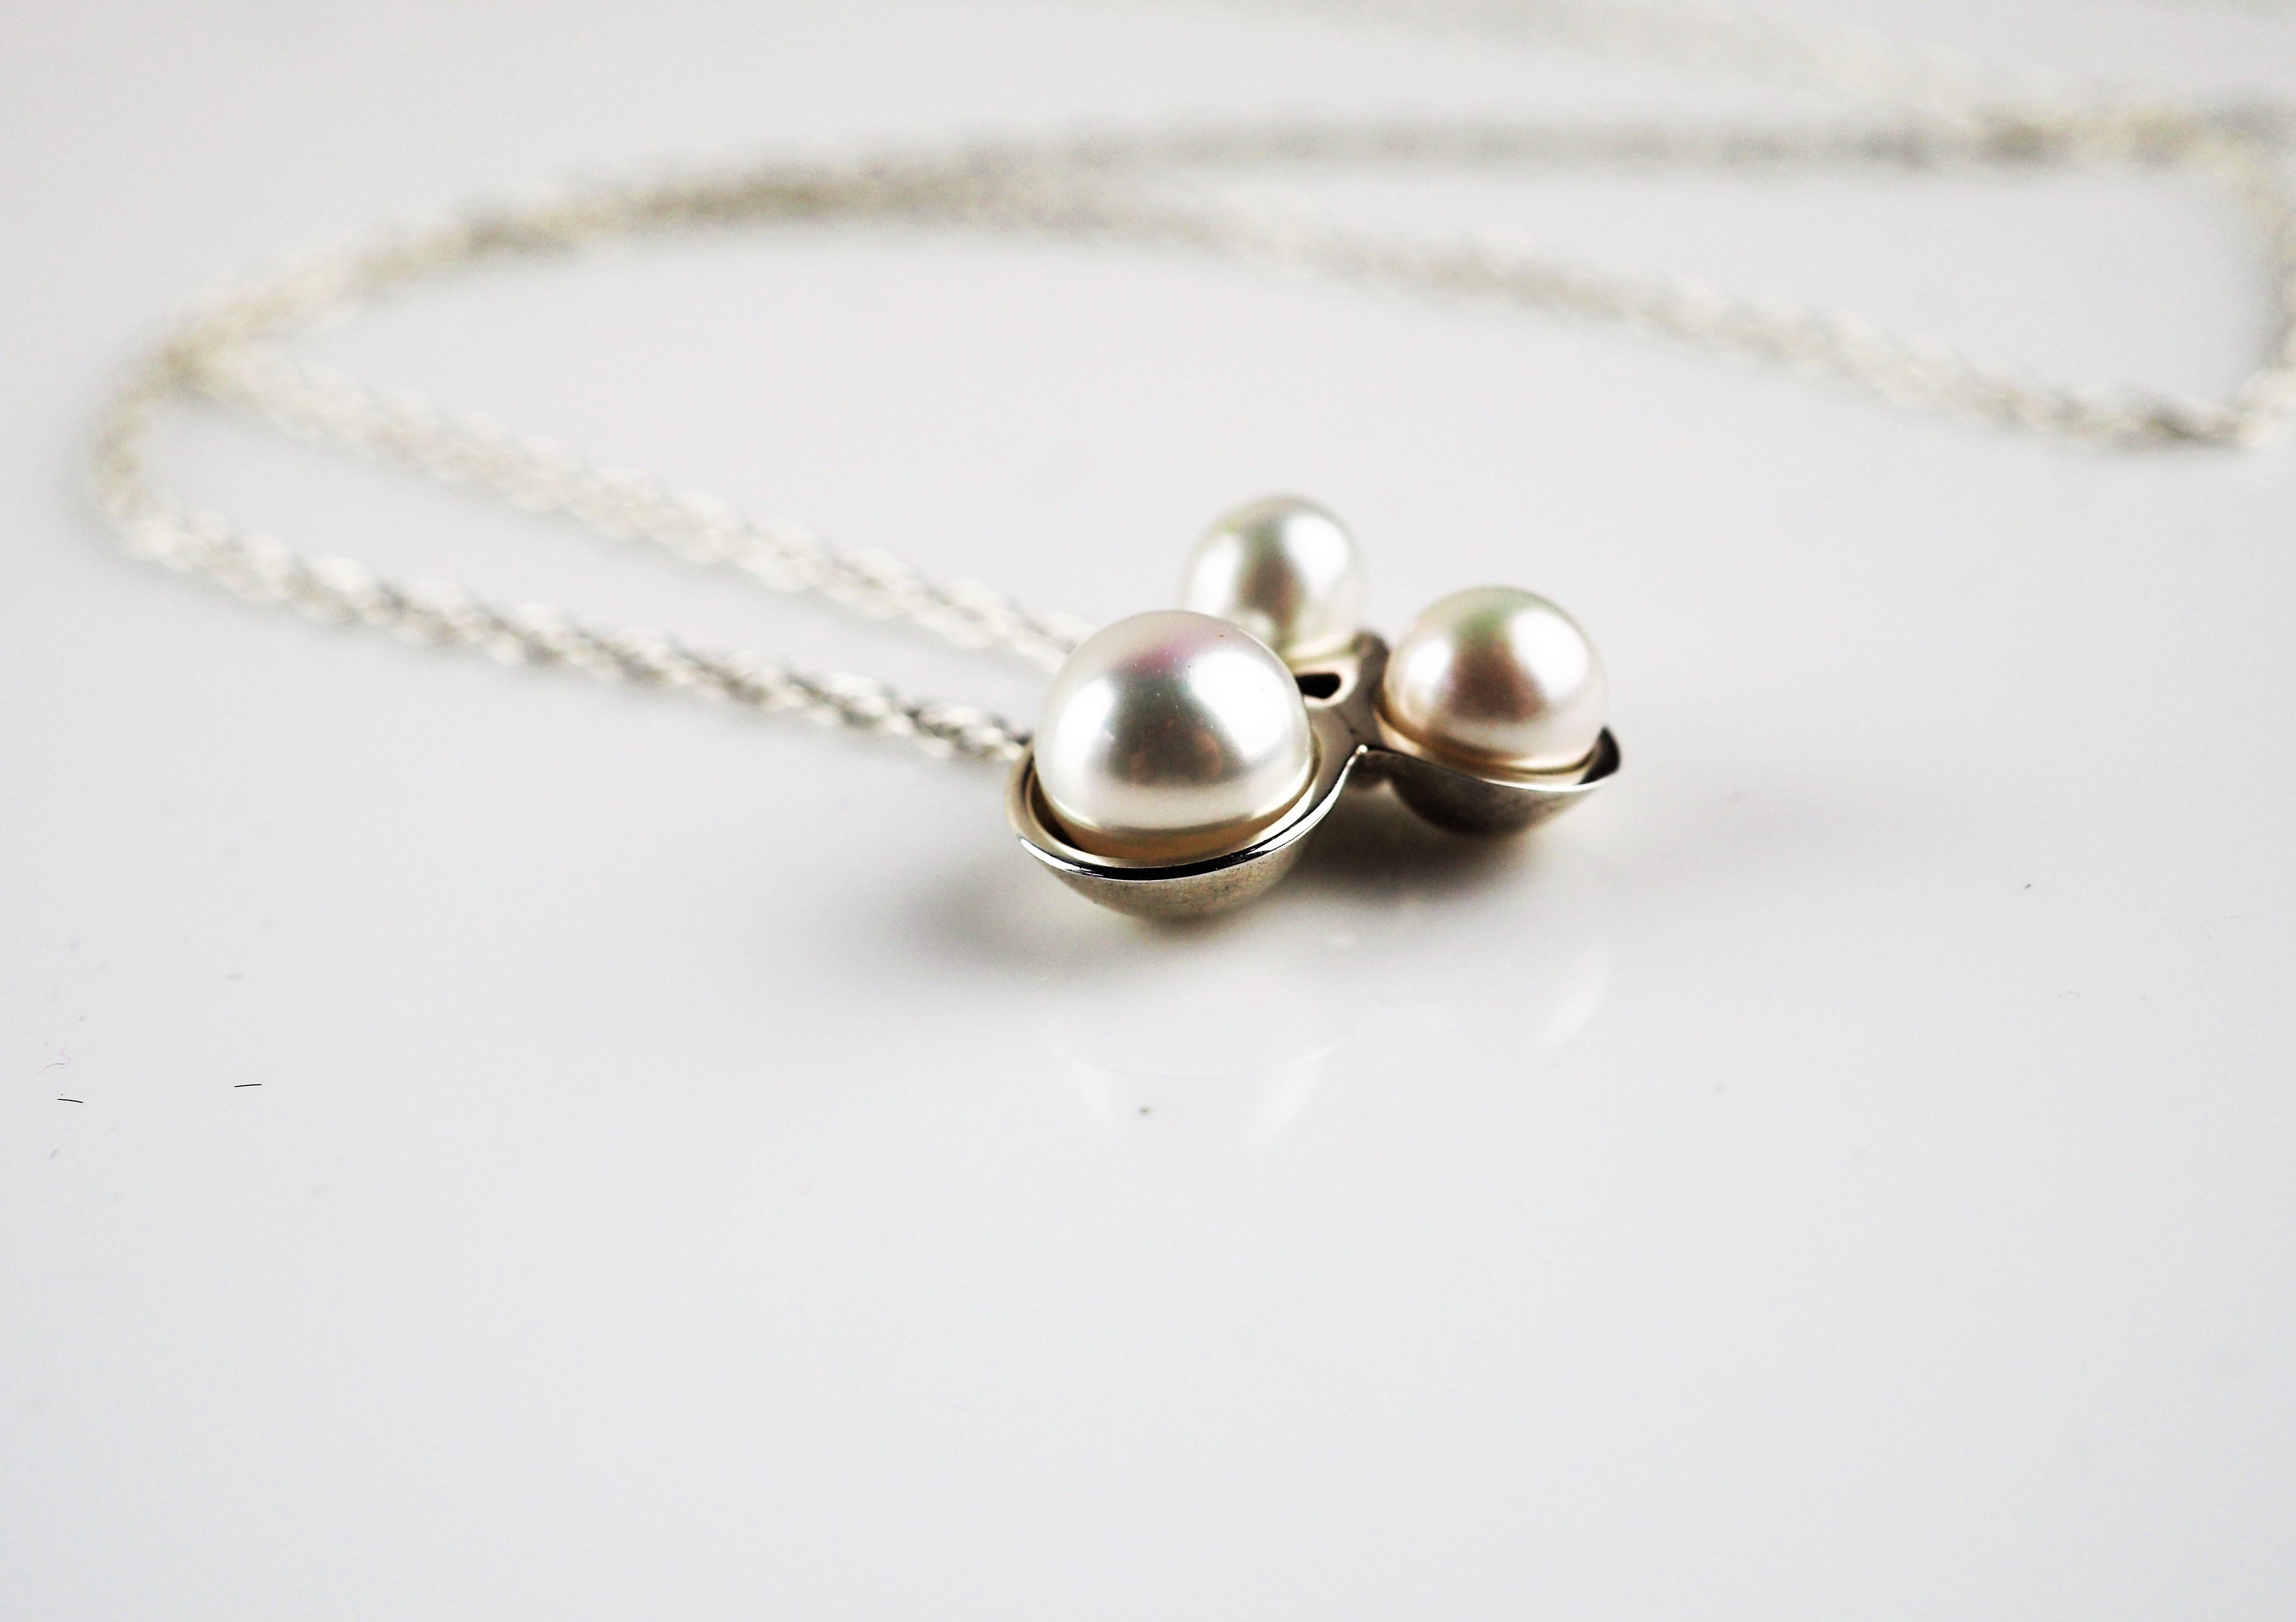 Gilbert, Jenny – Small Cluster Pearl Necklace | Jenny Gilbert | Primavera Gallery